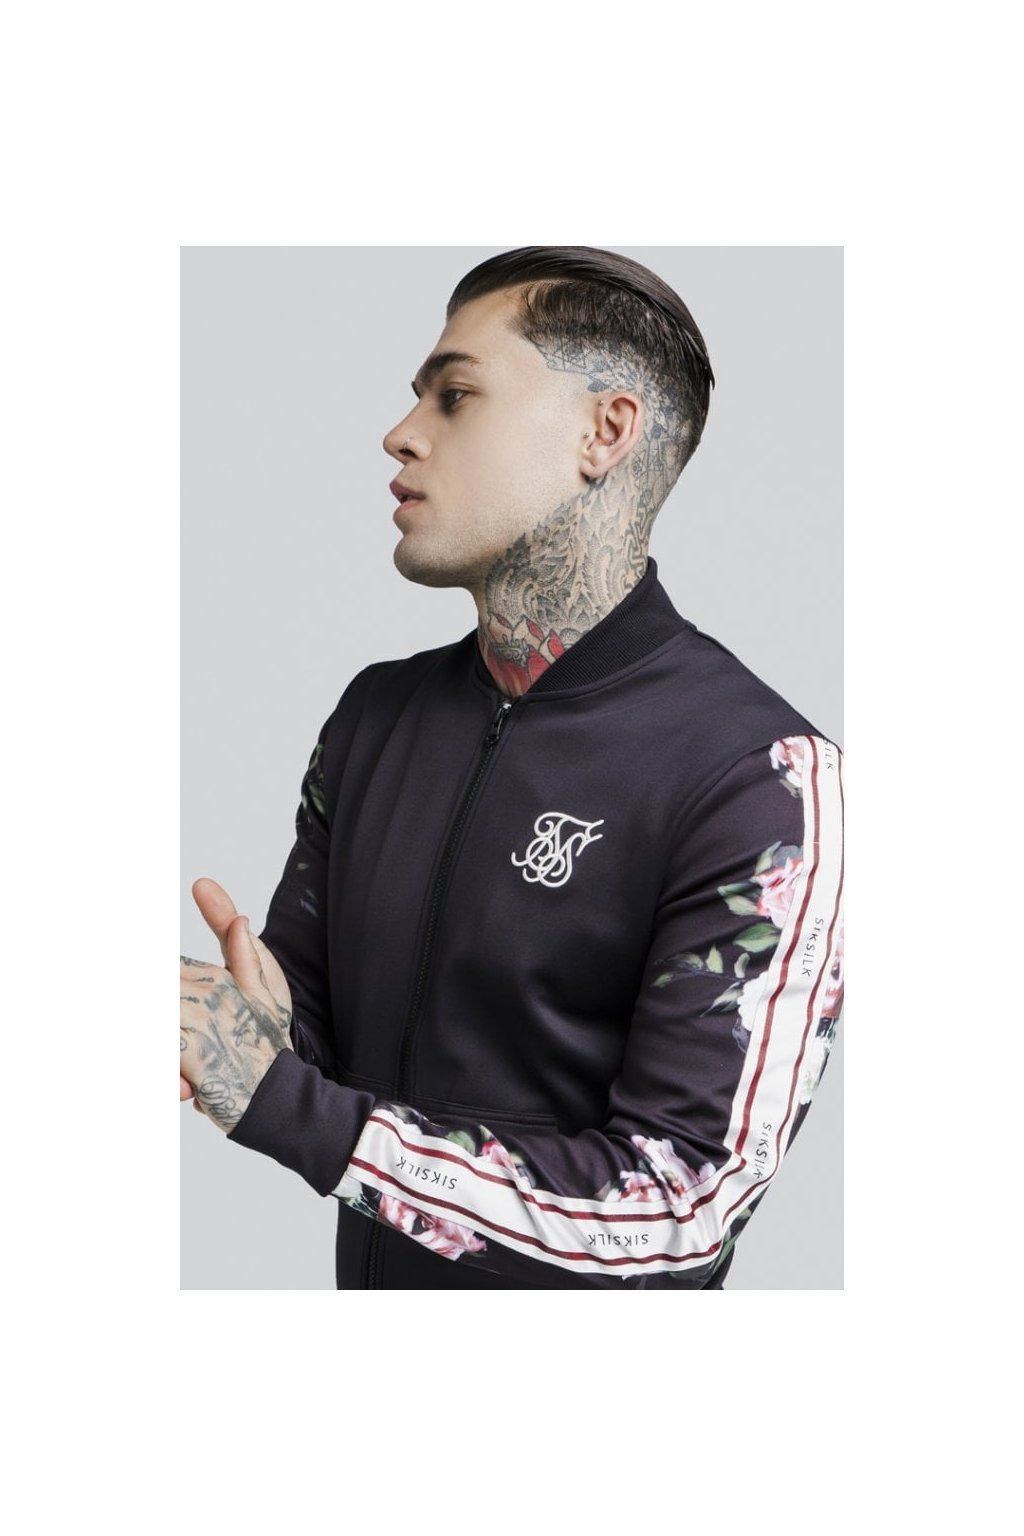 siksilk oil paint poly tricot bomber jacket black p2646 21850 medium